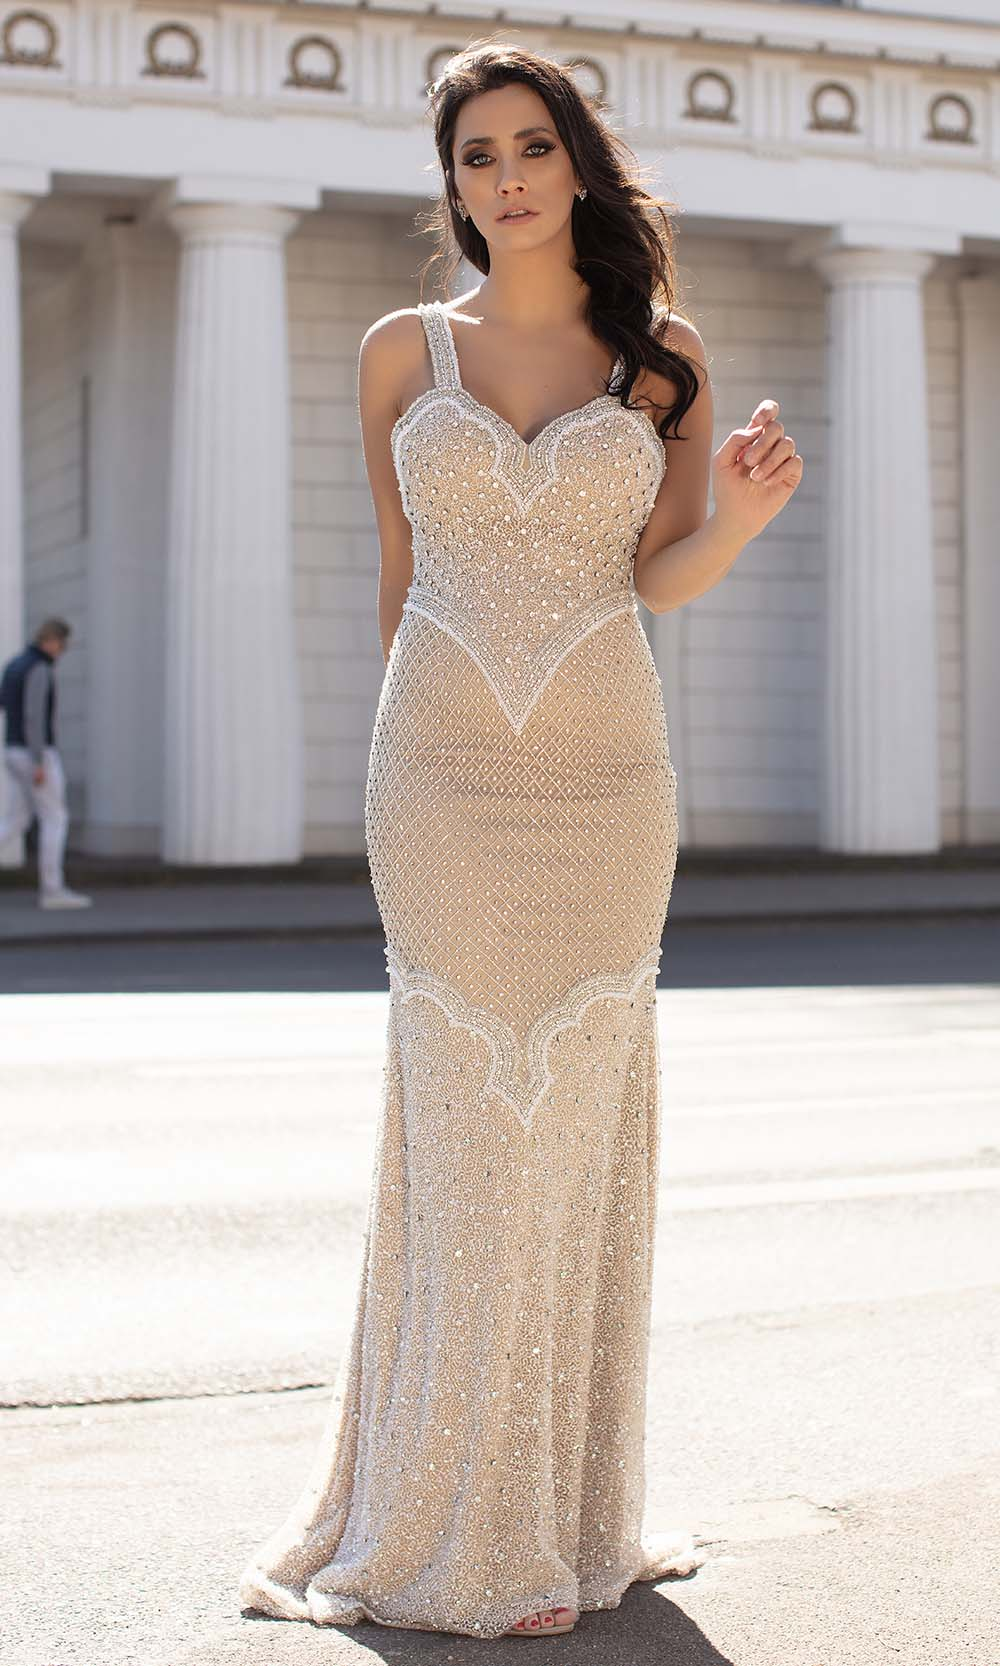 Chic and Holland - HF1522 Sleeveless Sweetheart Crystal Beaded Gown from Chic and Holland